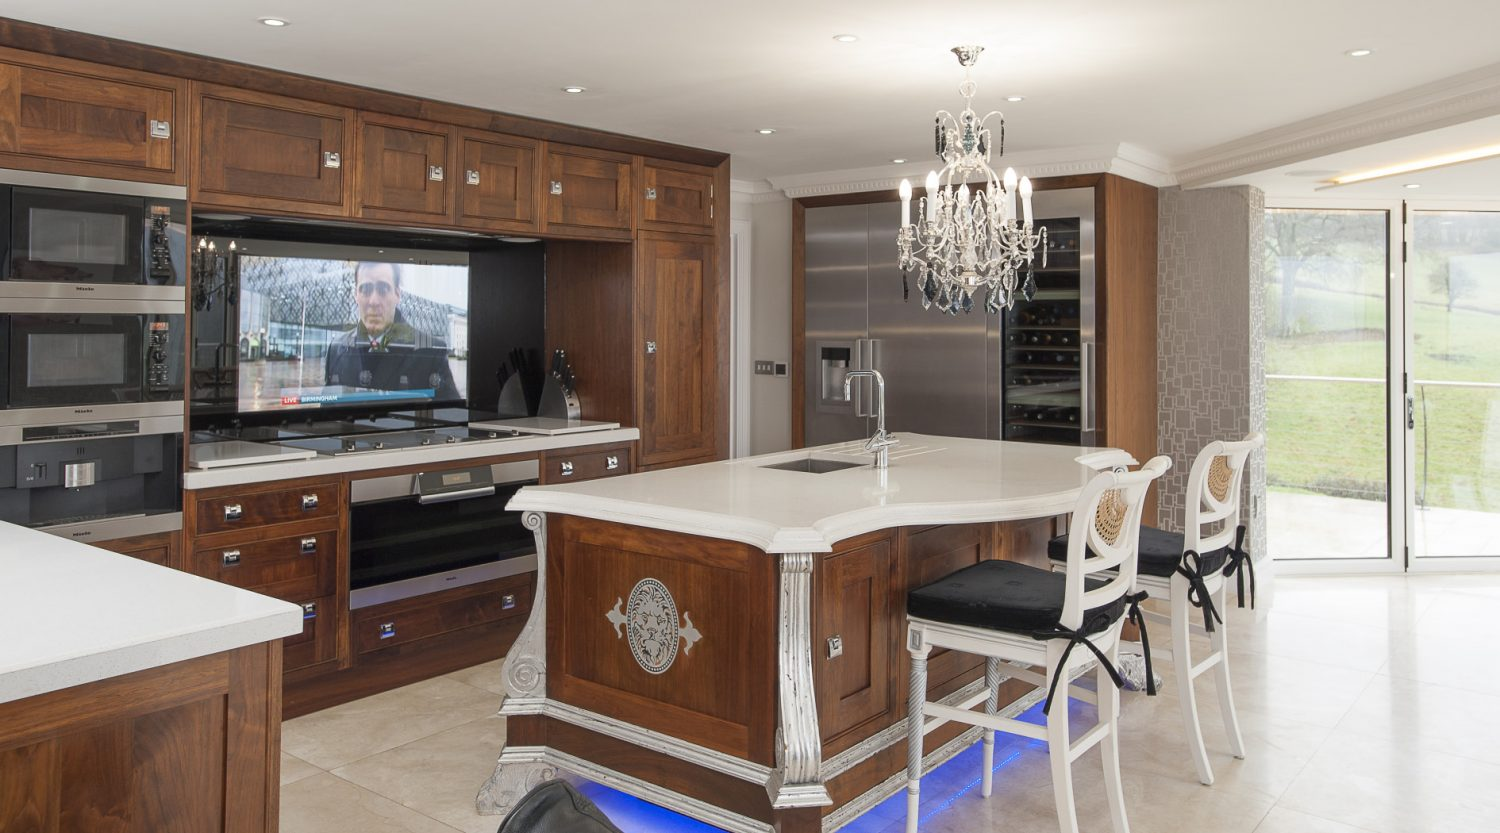 A large TV has been artfully set behind protective glass above the hob so Richard can watch the football while cooking. Also in the kitchen is a full height cabinet that, when opened, reveals more technology than GCHQ – technology that runs the house's state-of-the-art audio-visual systems